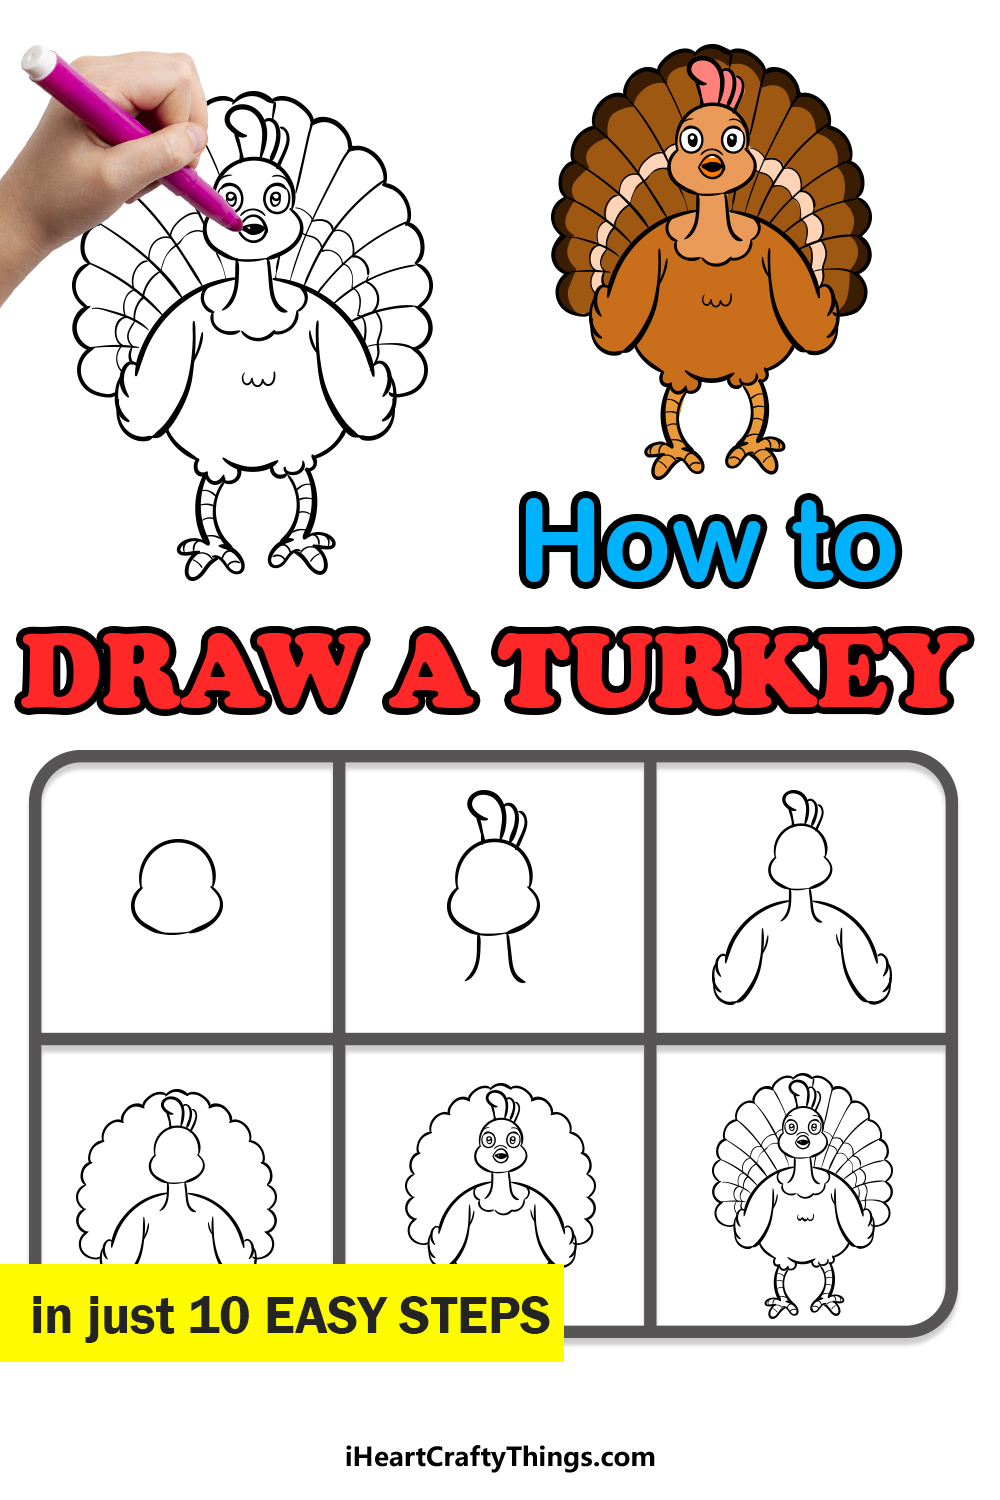 how to draw a turkey in 10 easy steps